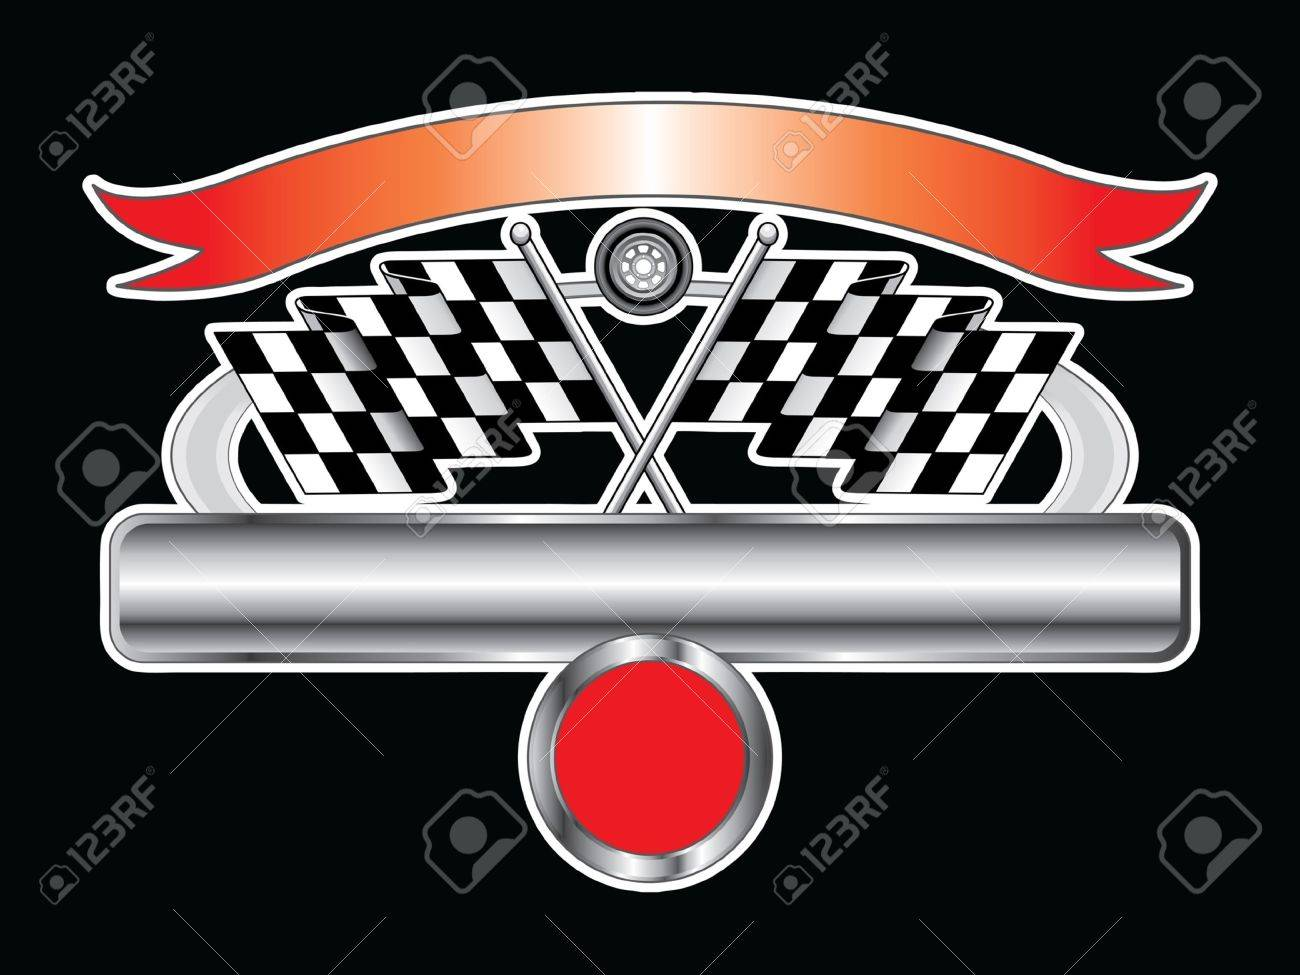 racing design with chrome banner is an illustration of a racing